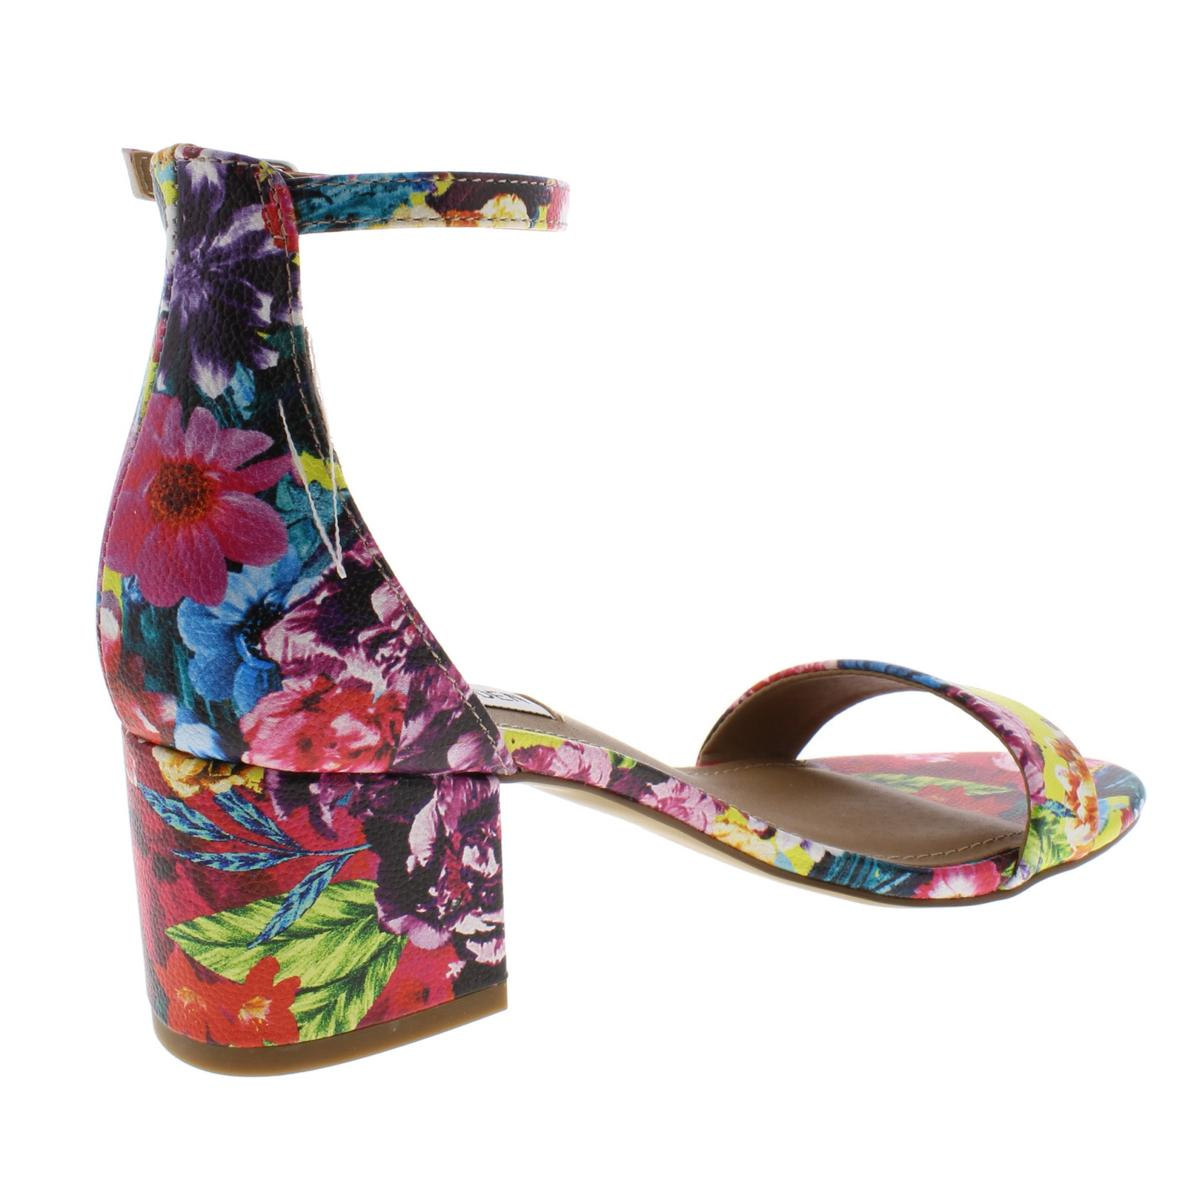 Steve-Madden-Womens-Irenee-Dress-Sandals-Heels-BHFO-0810 thumbnail 8